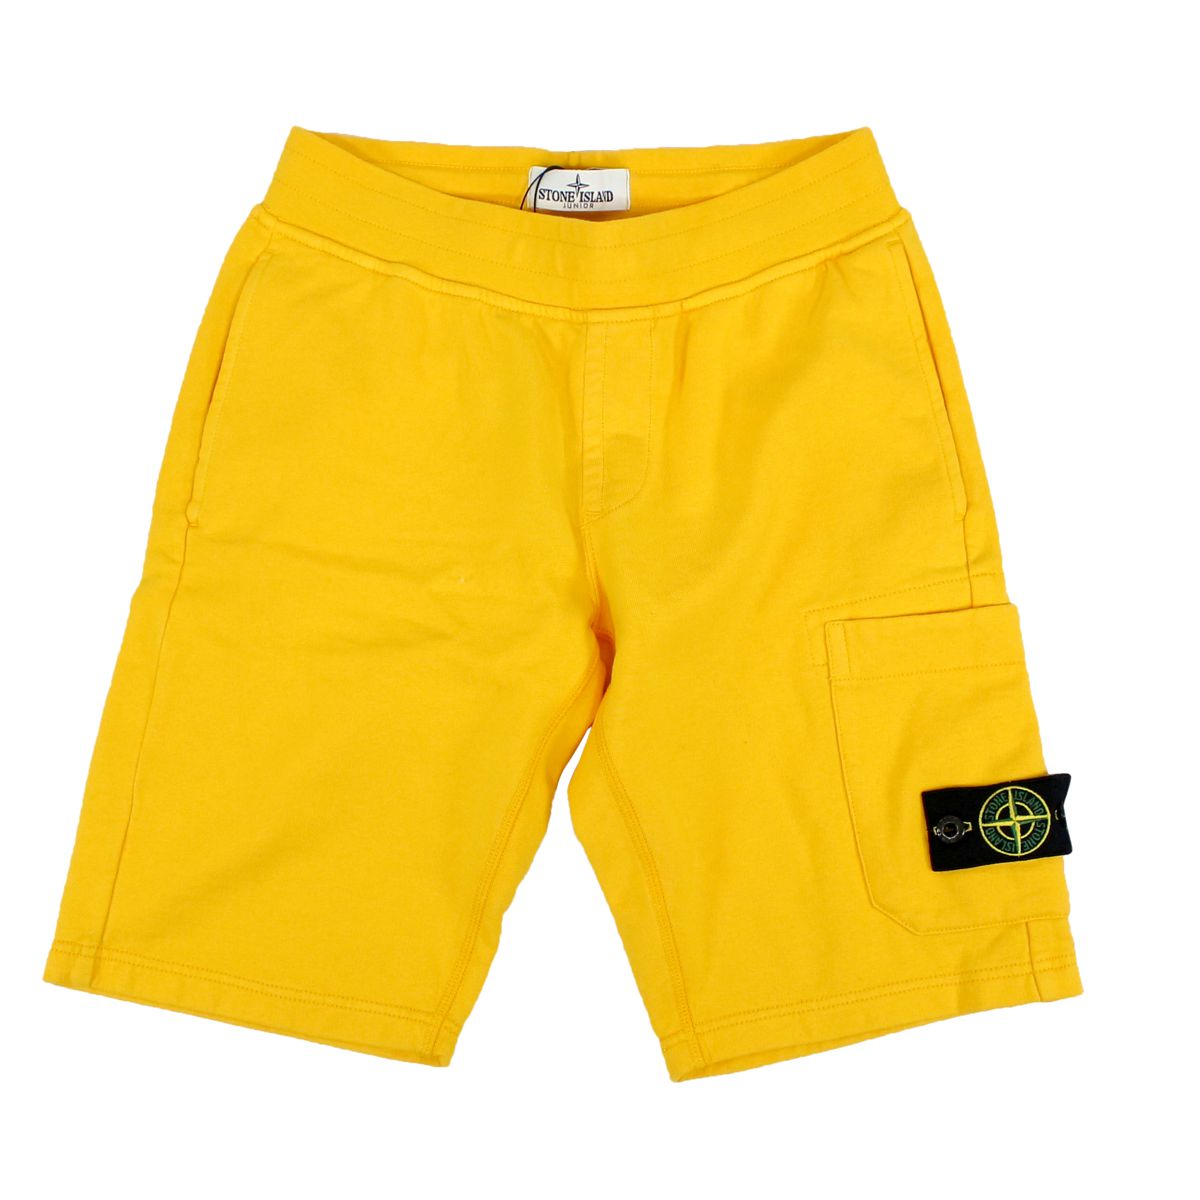 Fleece shorts with pocket Yellow Stone Island